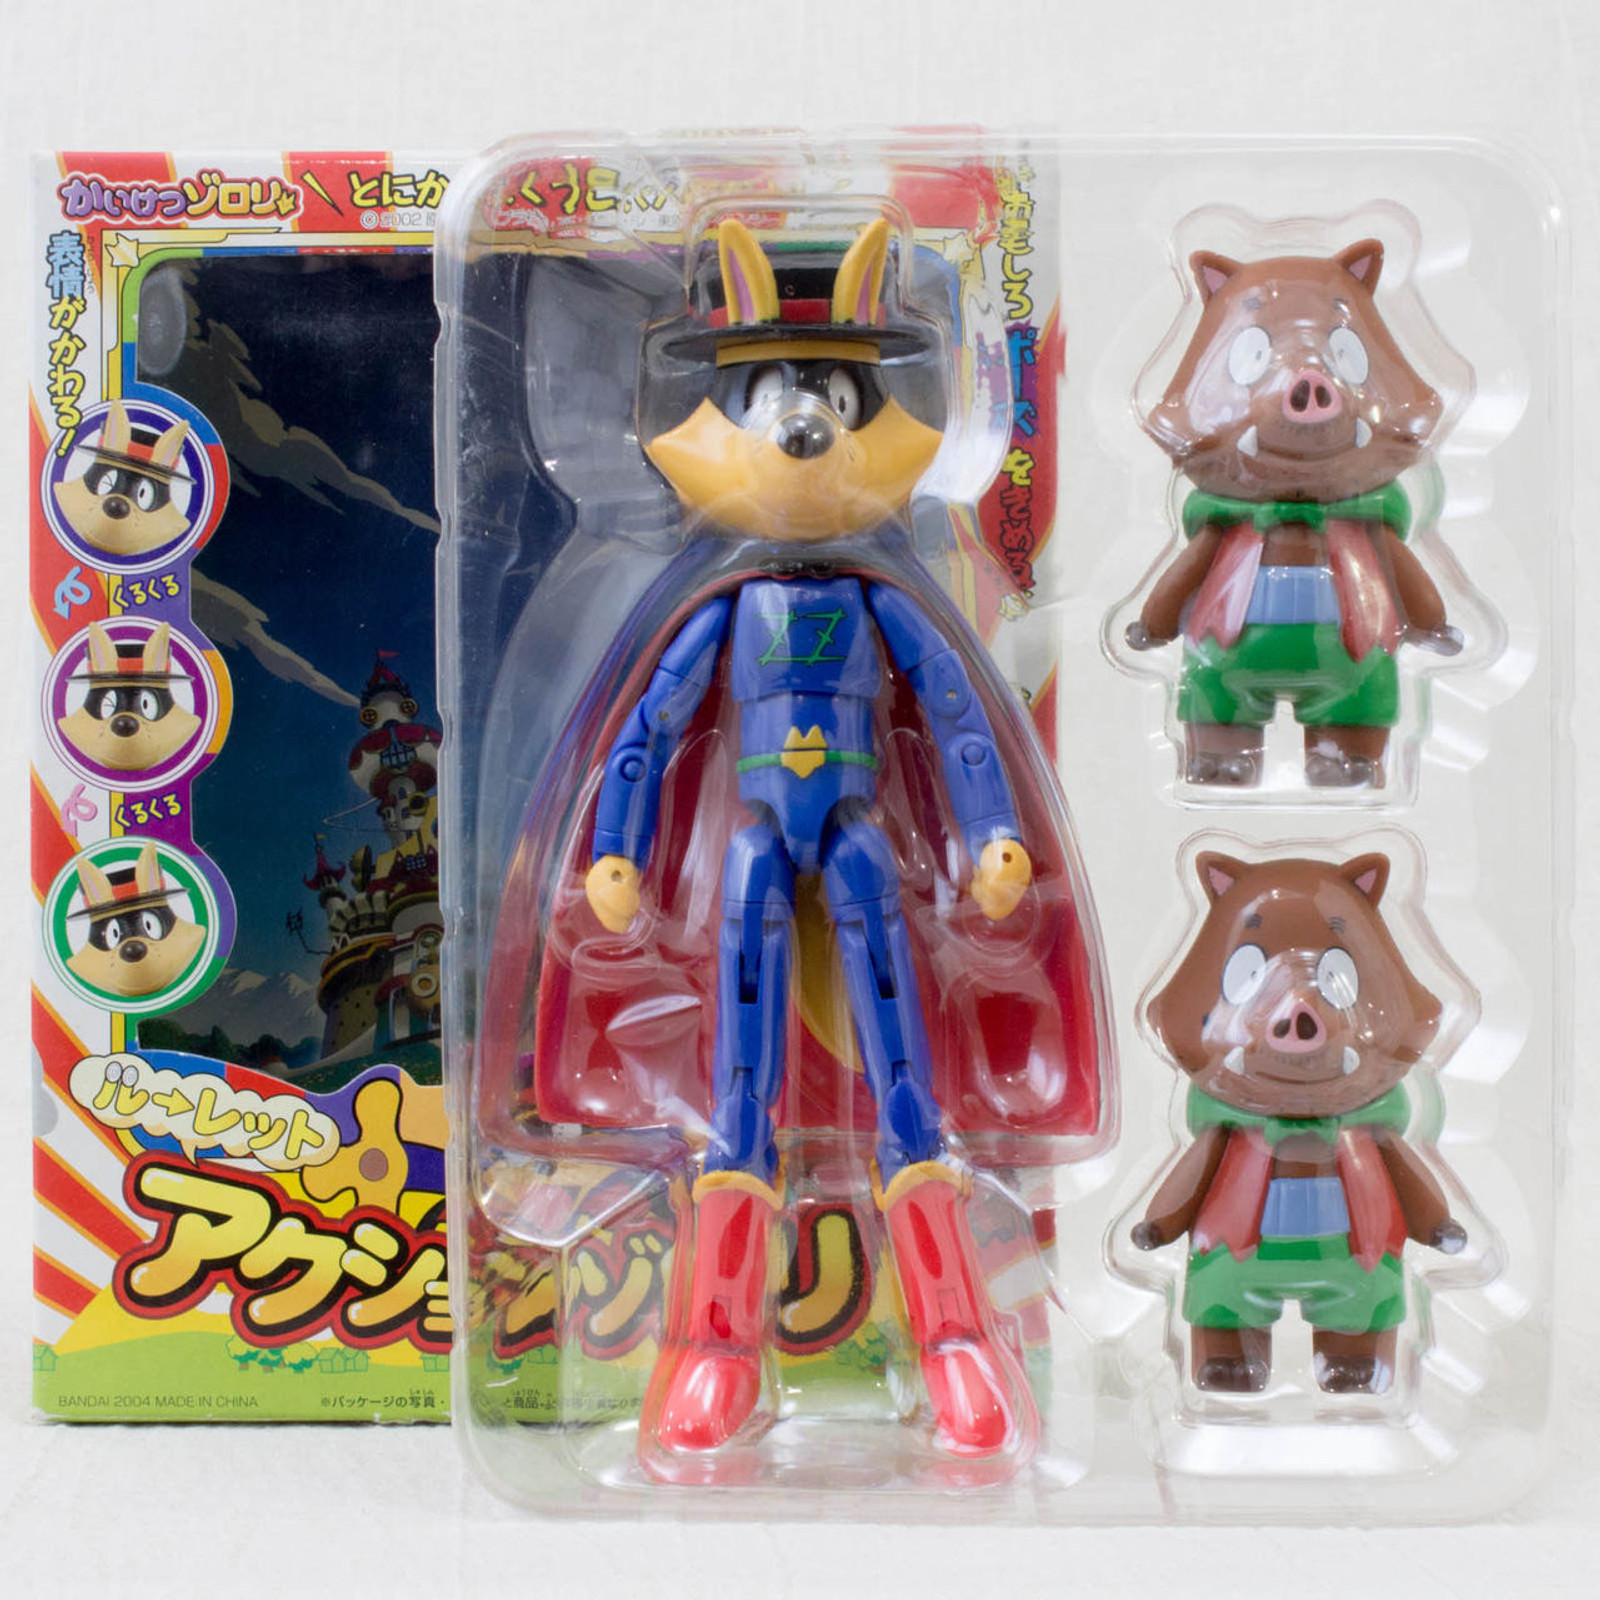 Kaiketsu Zorori Ishishi Noshishi Action Figure Set JAPAN ANIME MANGA